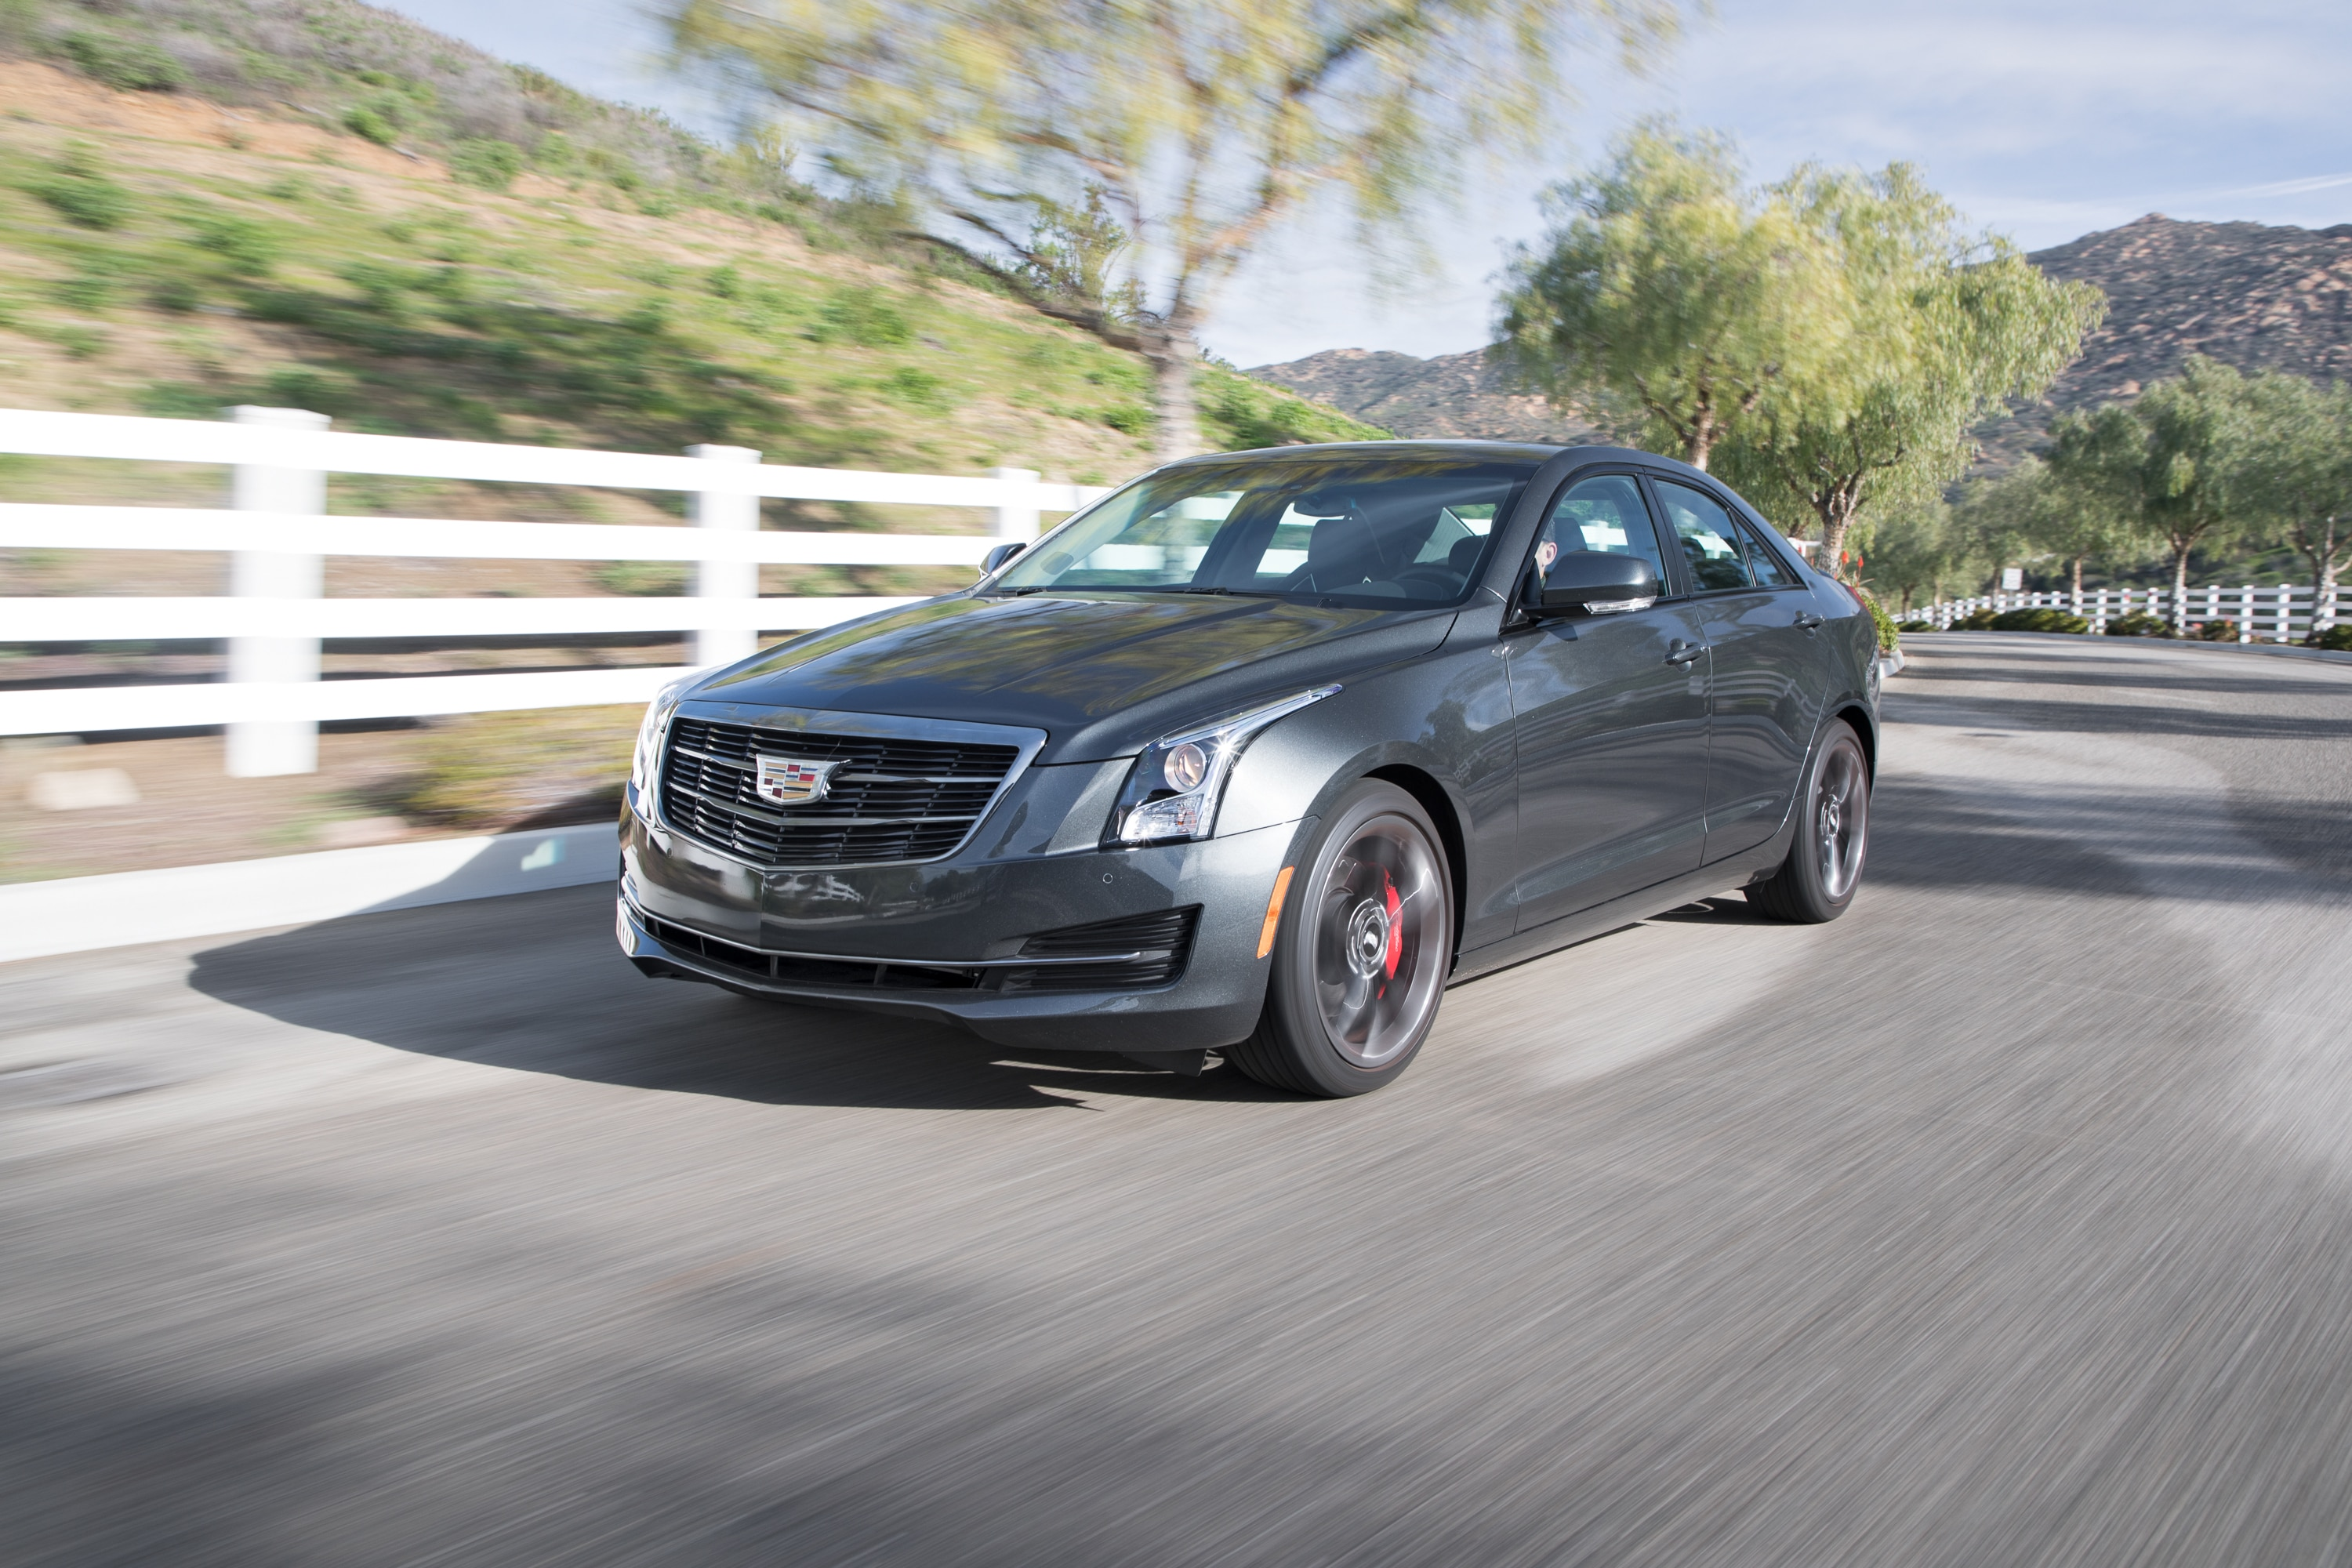 Cadillac CT5 to Succeed the ATS CTS and XTS Sedans